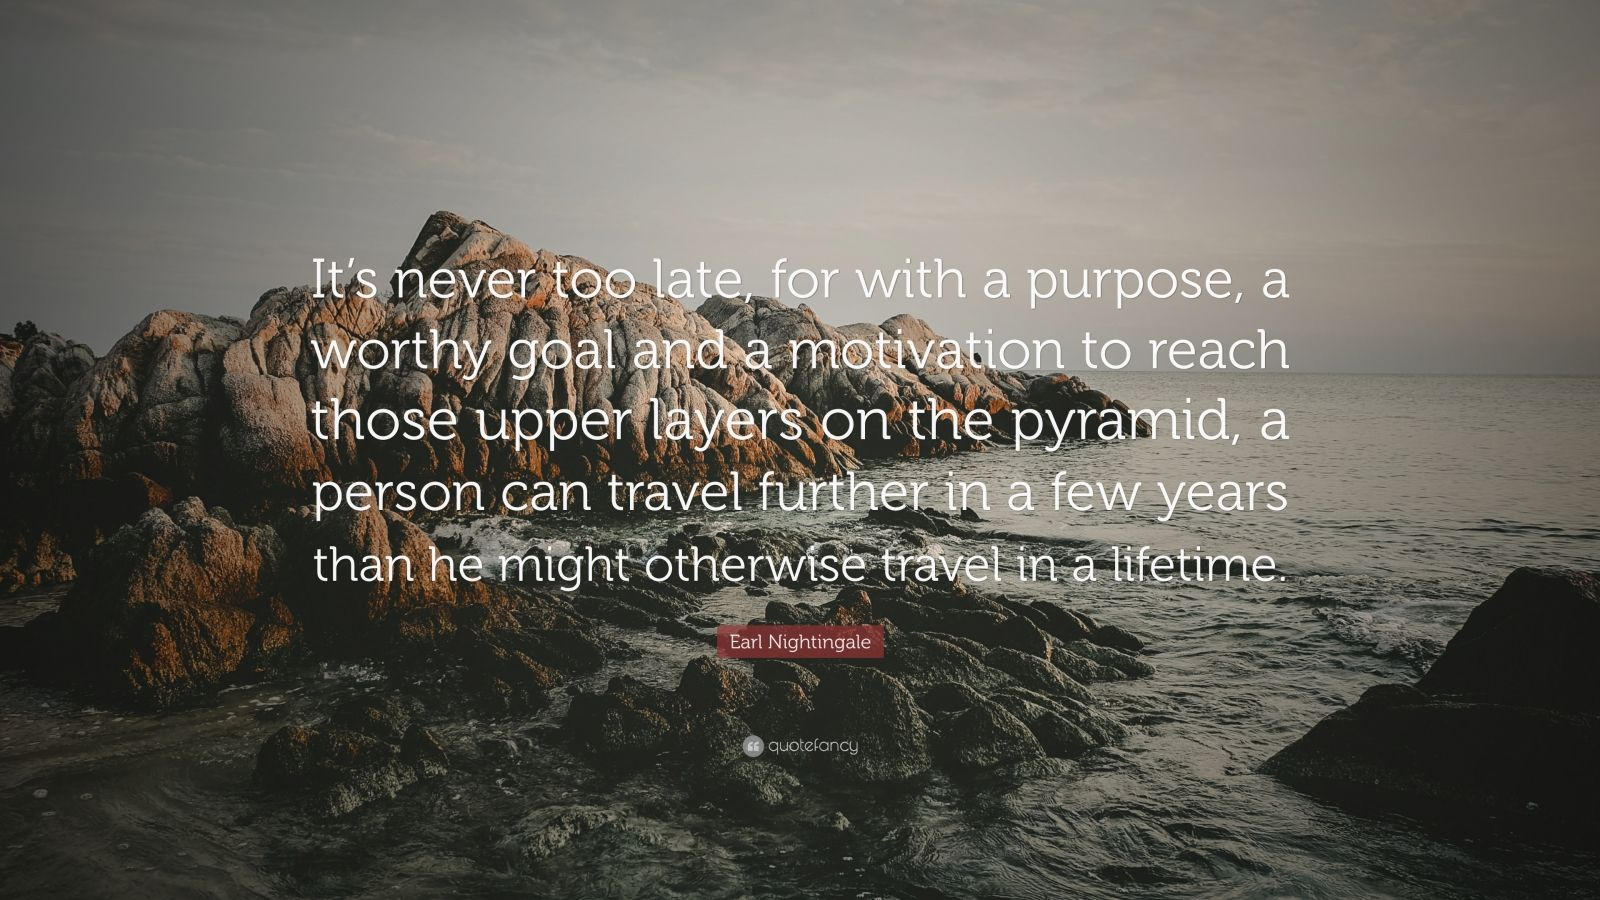 "Earl Nightingale Quote: ""It's never too late, for with a purpose, a worthy goal and a motivation to reach those upper layers on the pyramid, a person can travel further in a few years than he might otherwise travel in a lifetime."""